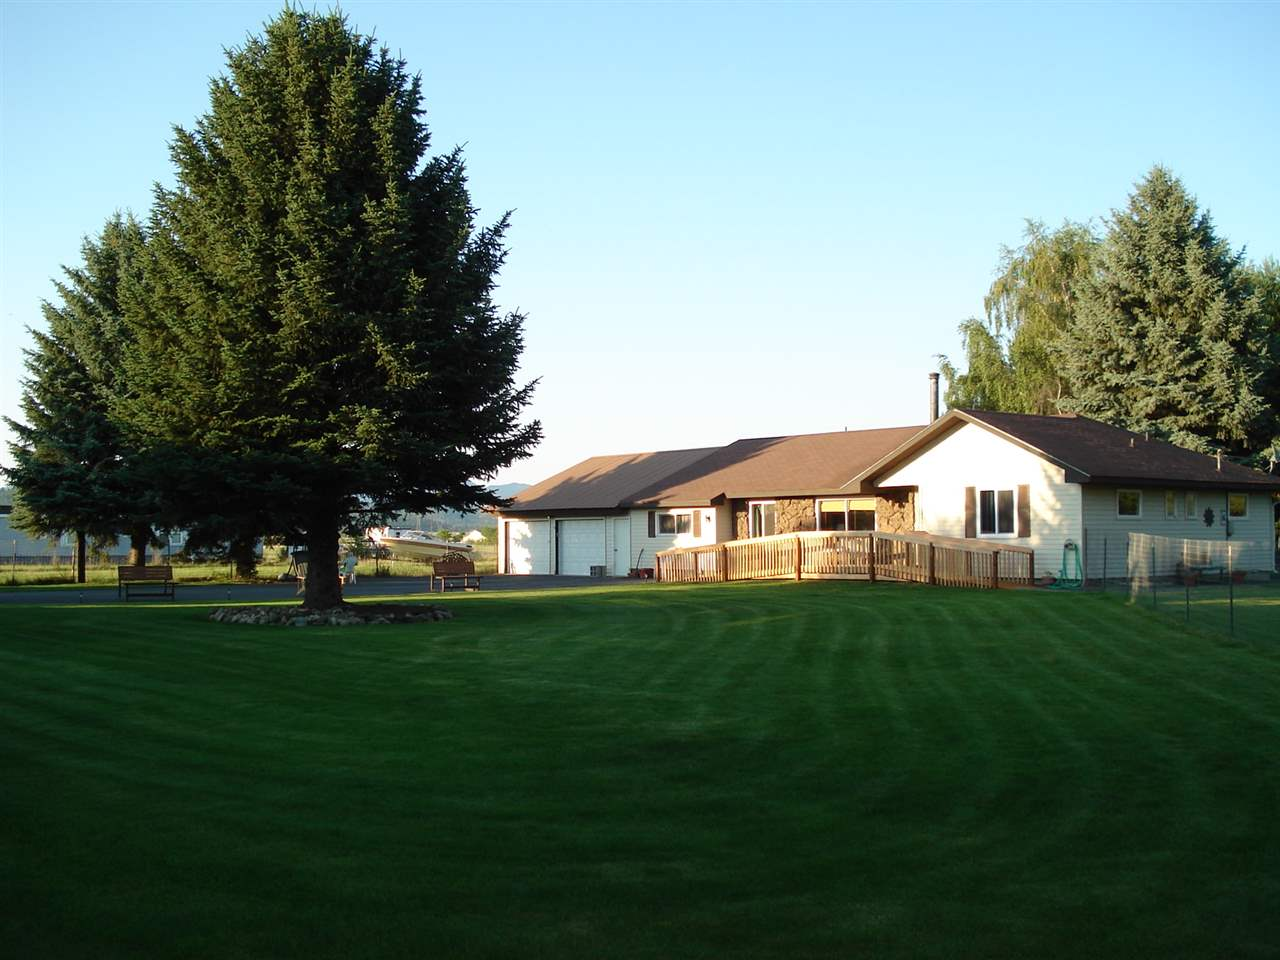 Single Family Home for Sale at 6212 N Chase Road 6212 N Chase Road Newman Lake, Washington 99025 United States